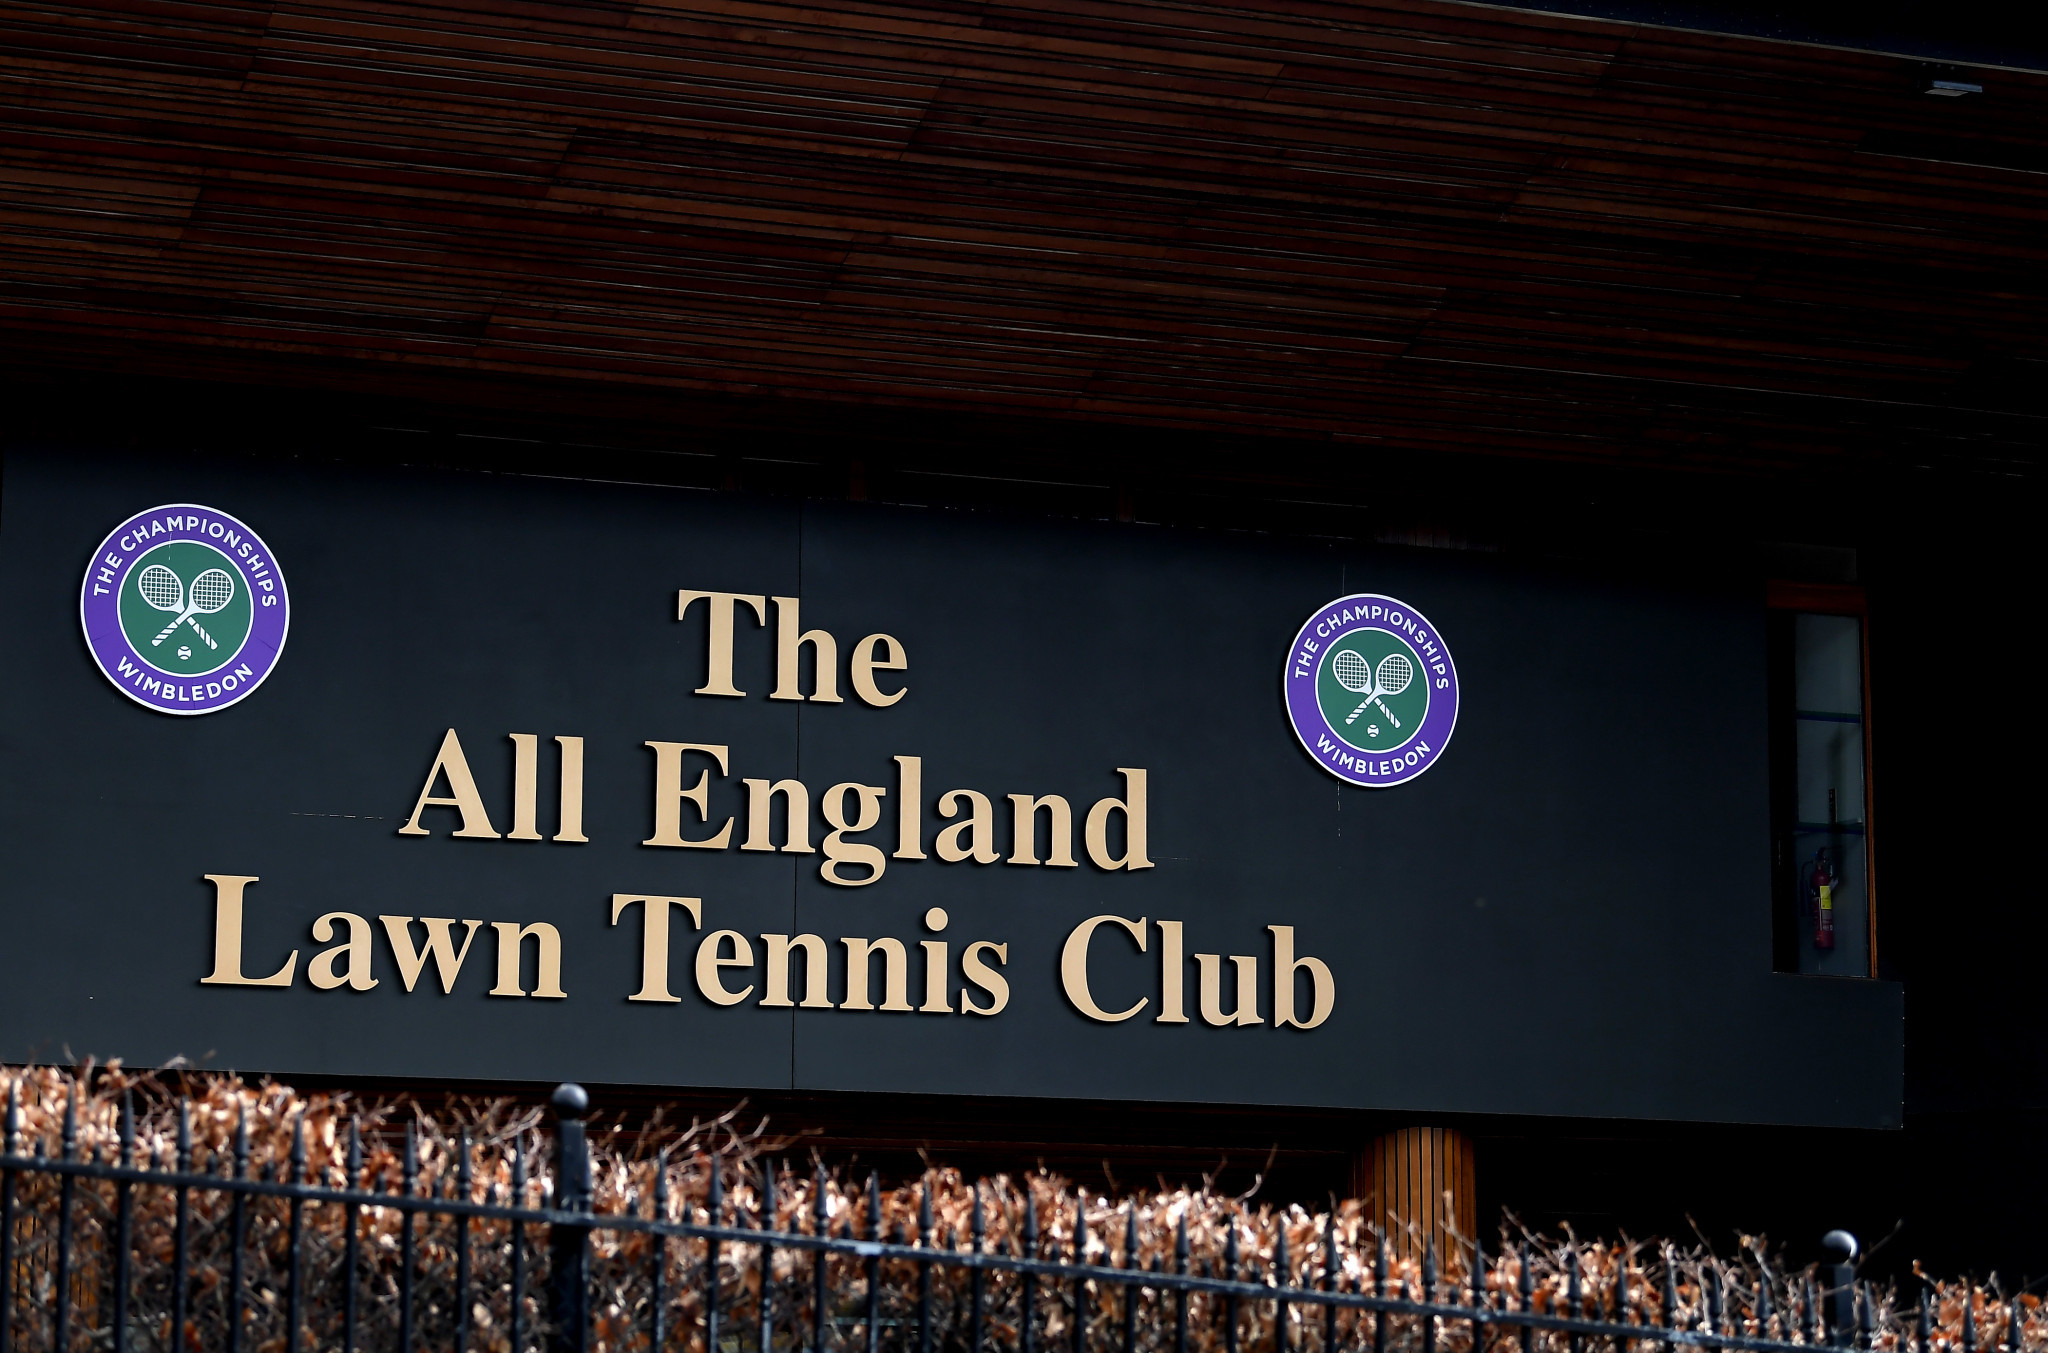 All England Lawn Tennis Club announce series of contributions to support pandemic recovery